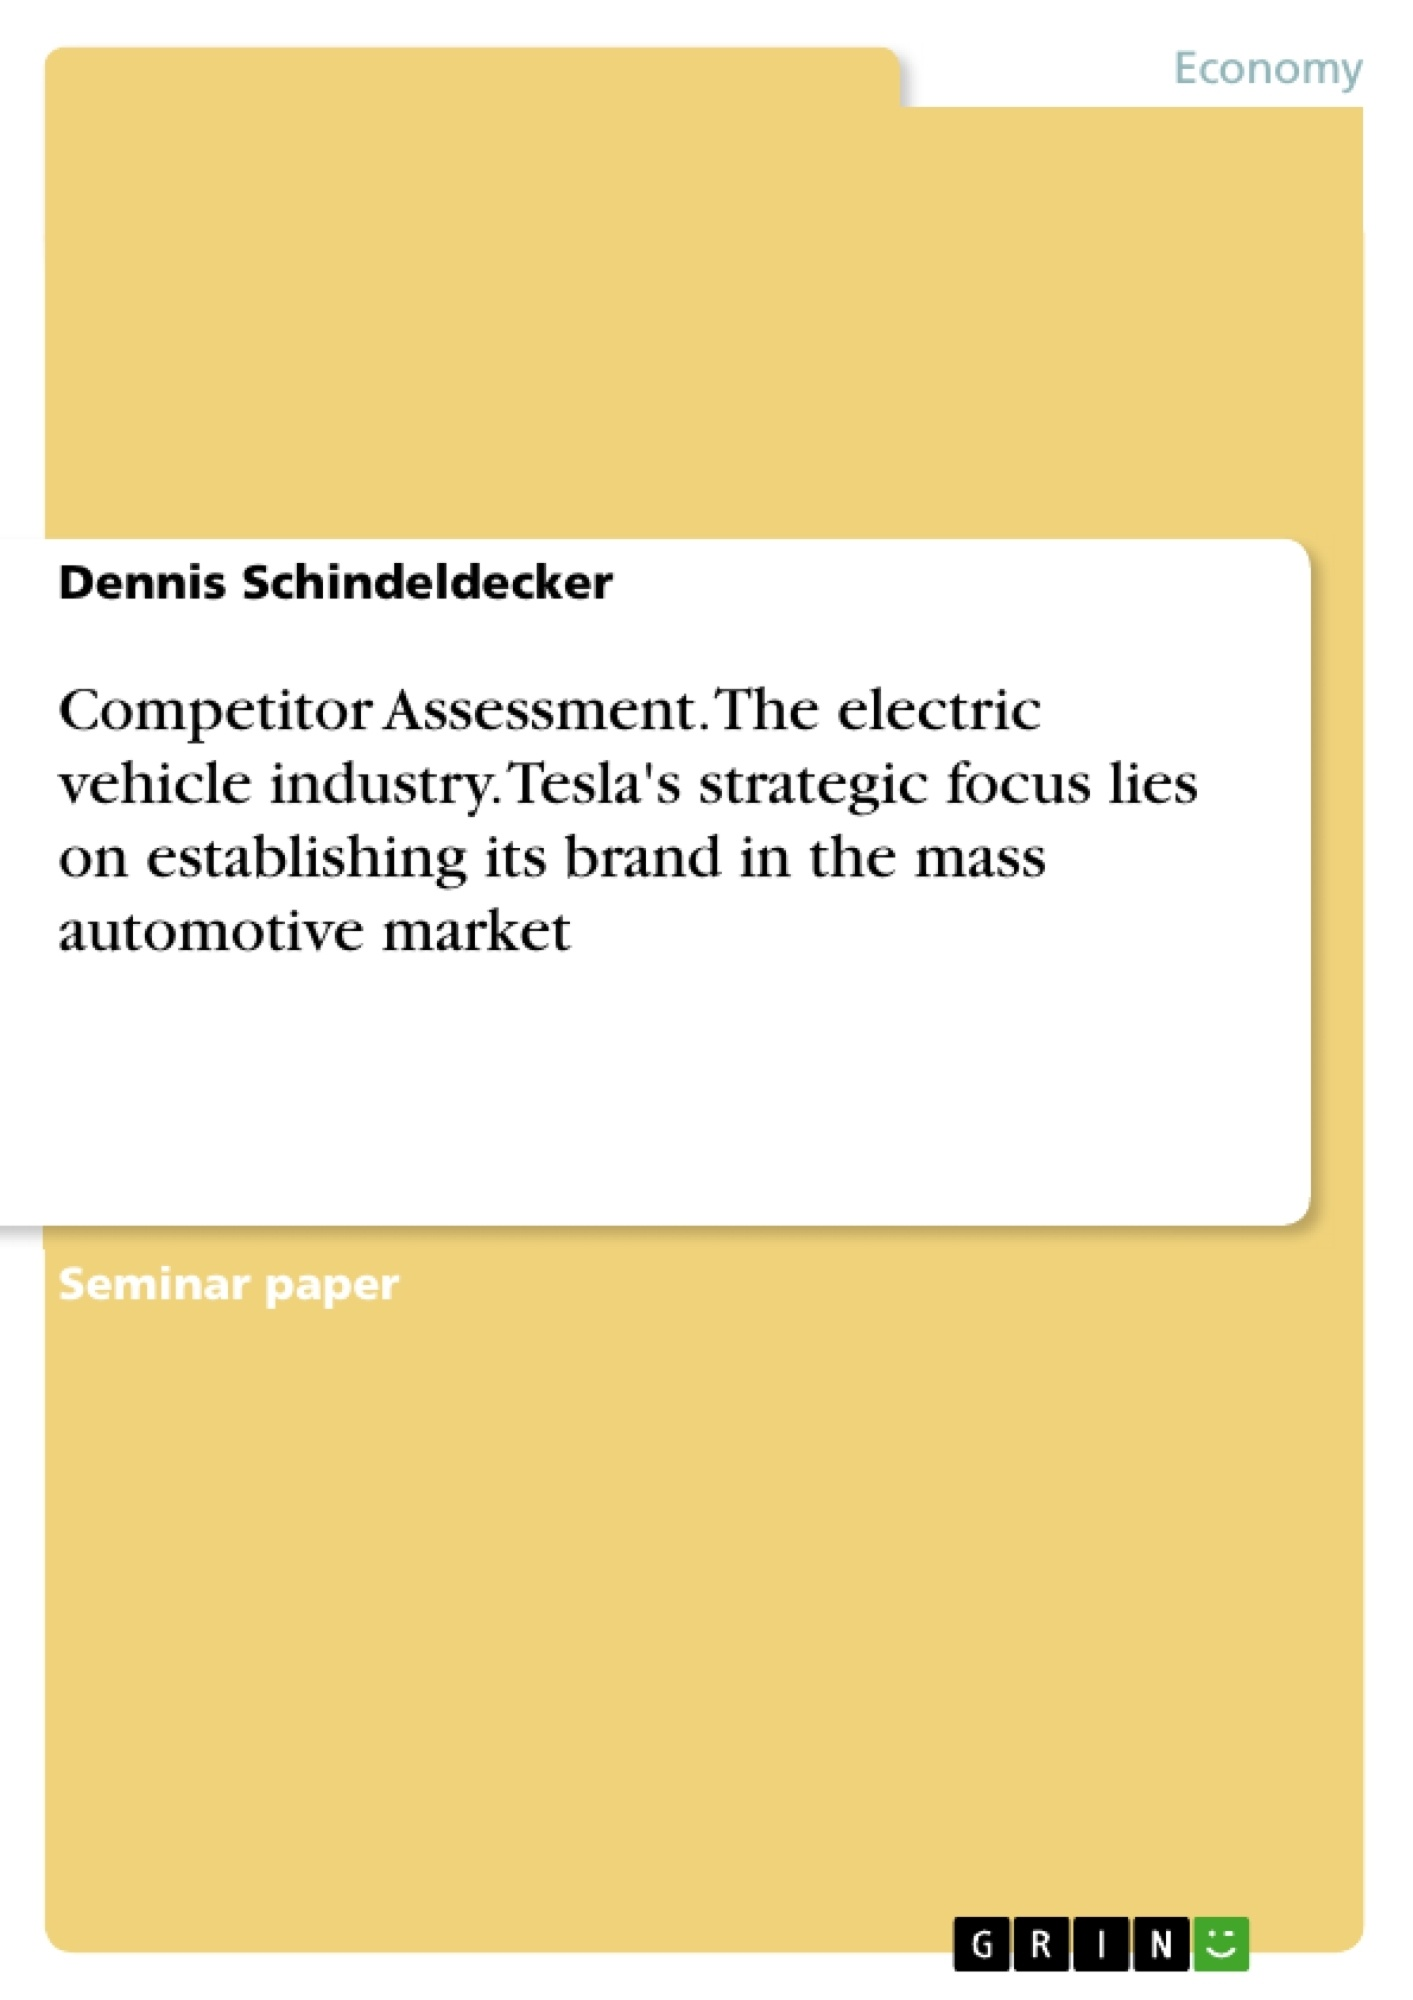 Title: Competitor Assessment. The electric vehicle industry. Tesla's strategic focus lies on establishing its brand in the mass automotive market